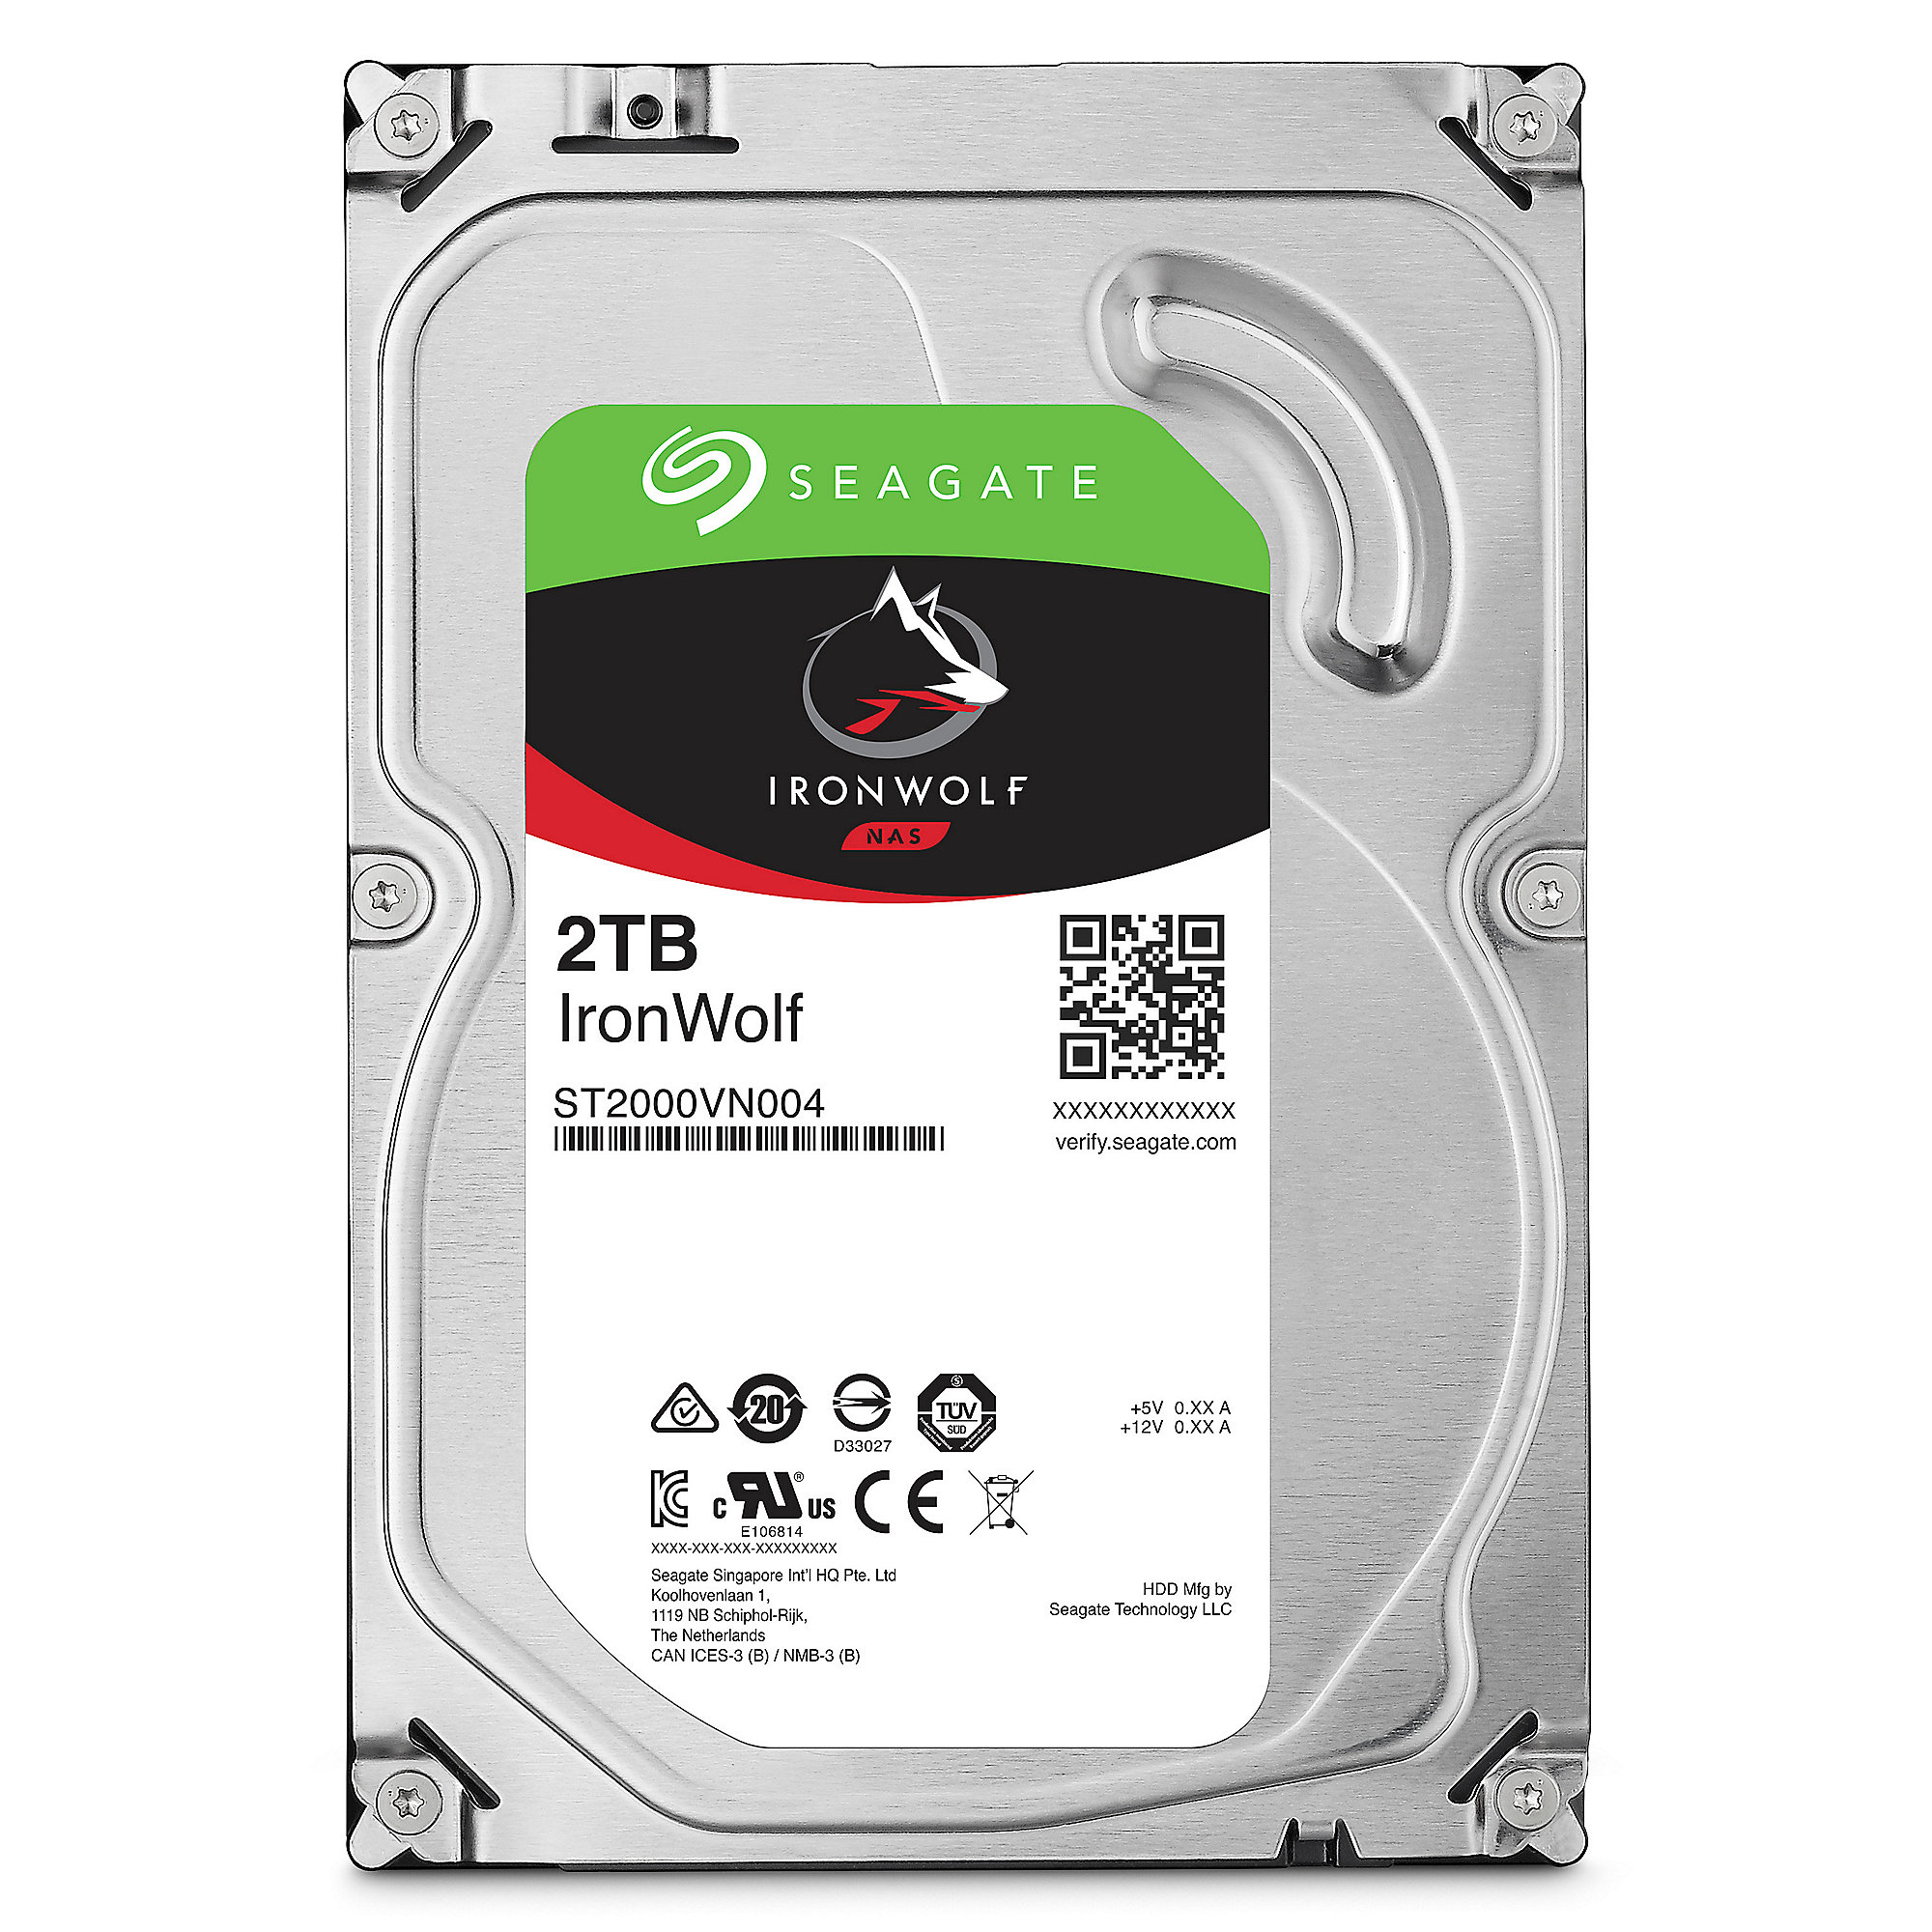 Seagate 2er Set IronWolf NAS HDD ST2000VN004 - 2TB 5900rpm 64MB 3.5zoll SATA600